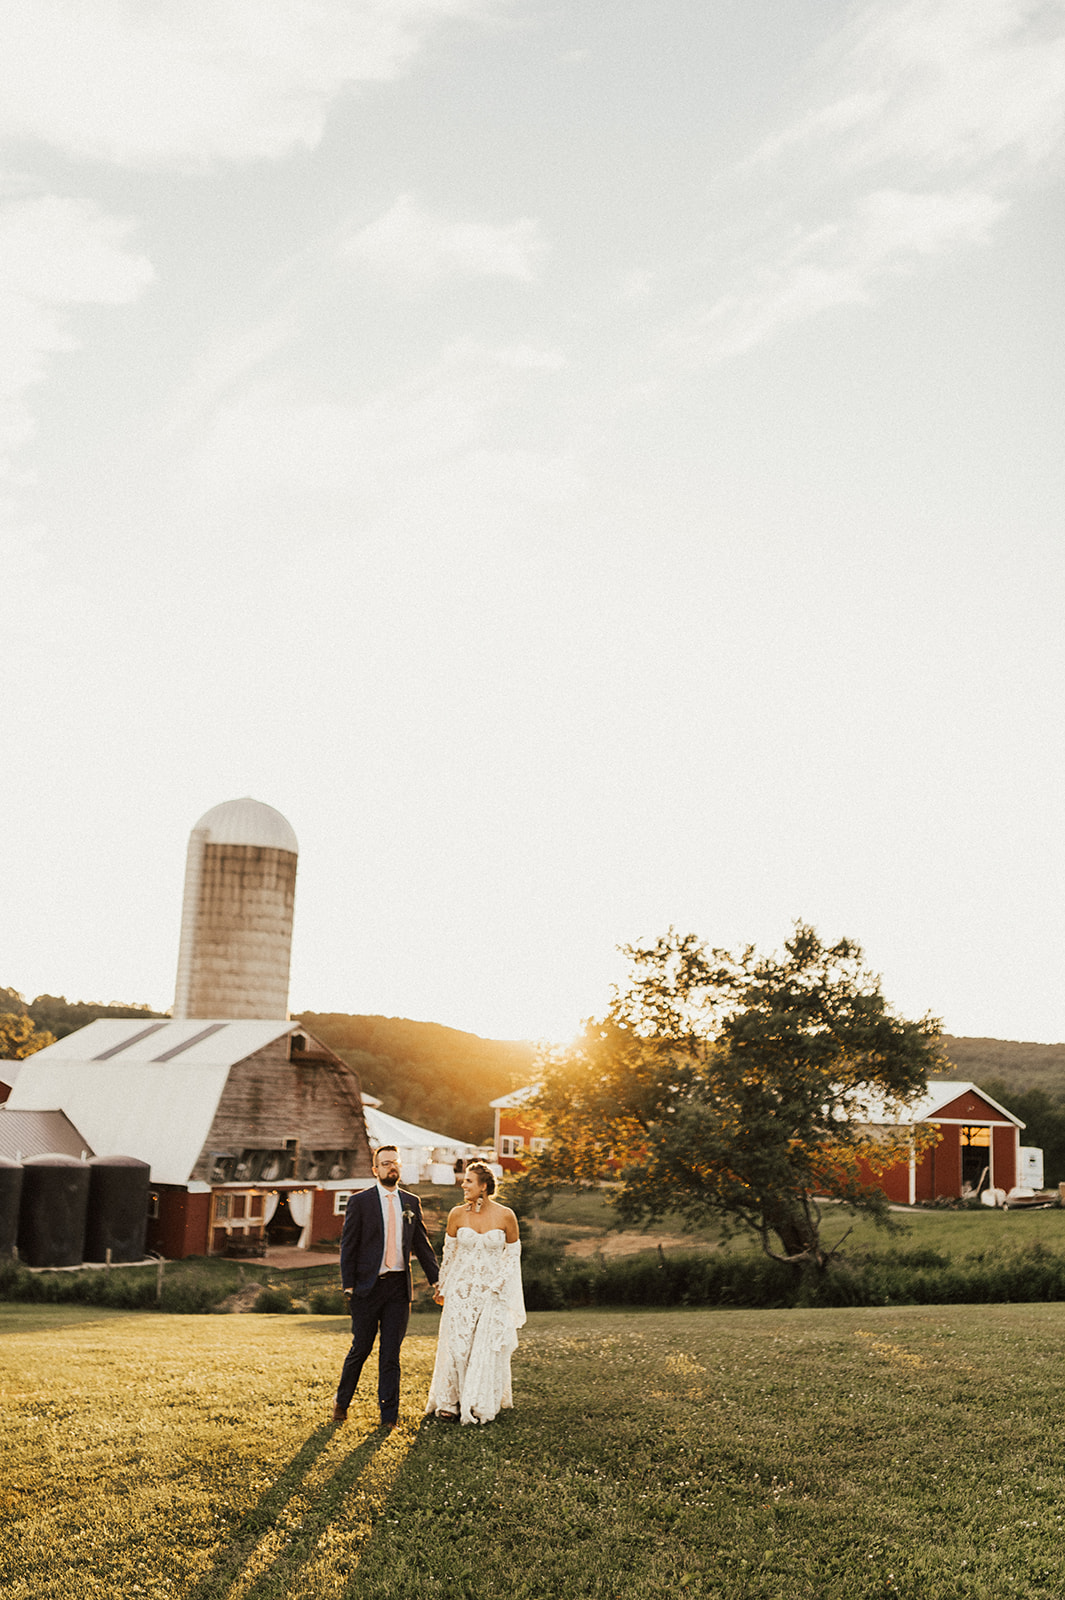 The Farmhouse Restaurant Gilbert Gilbertsville Farmhouse Weekend Wedding Venue